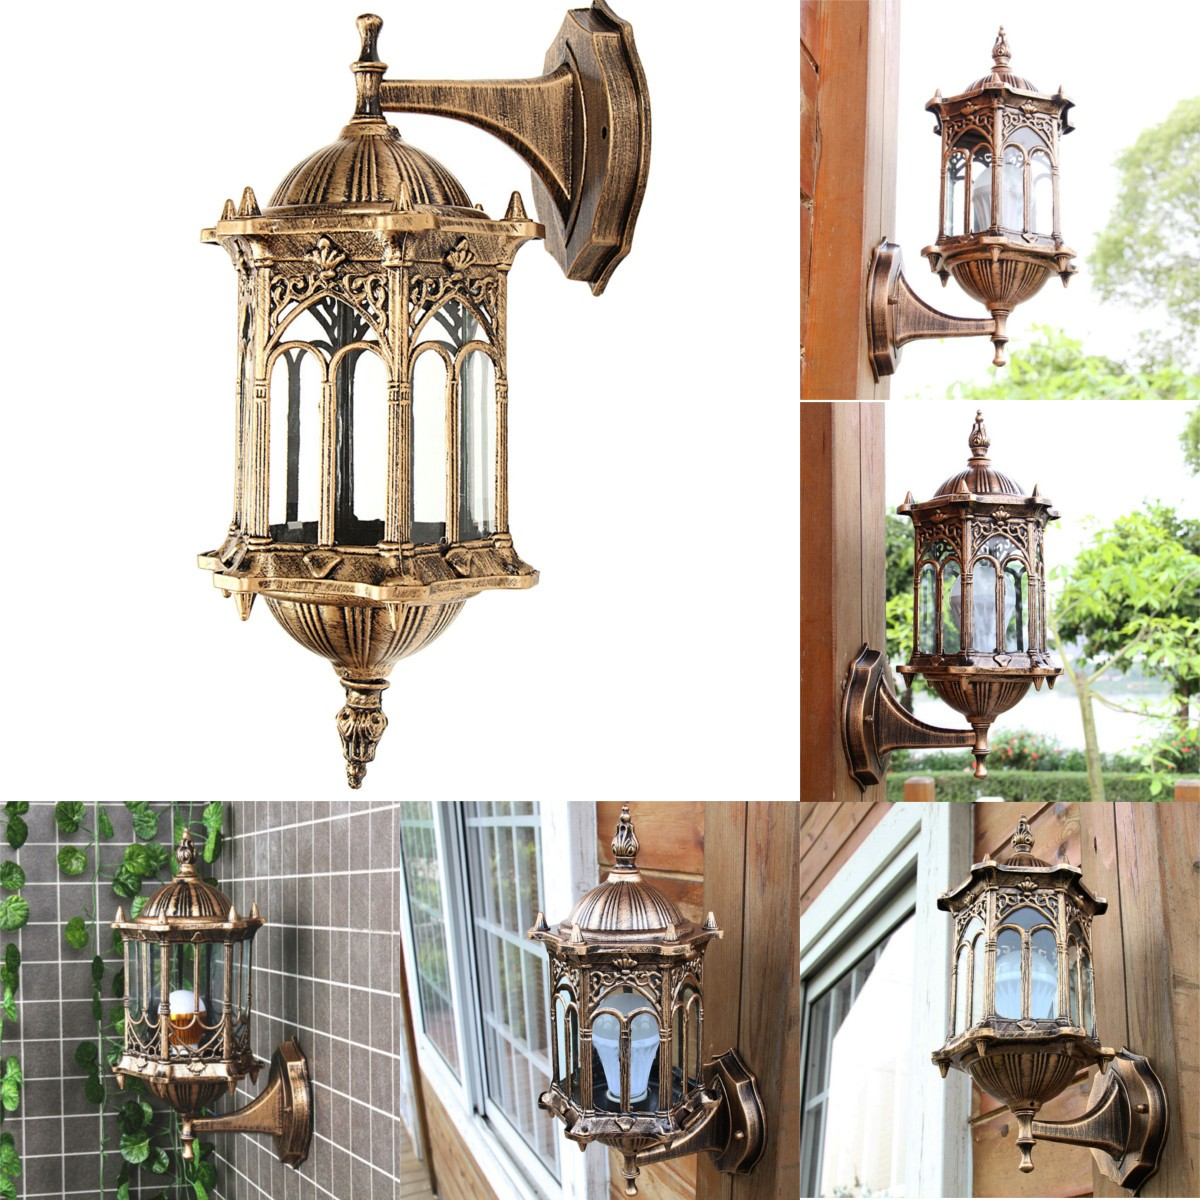 Outdoor bronze antique exterior wall light fixture for Vintage exterior light fixtures